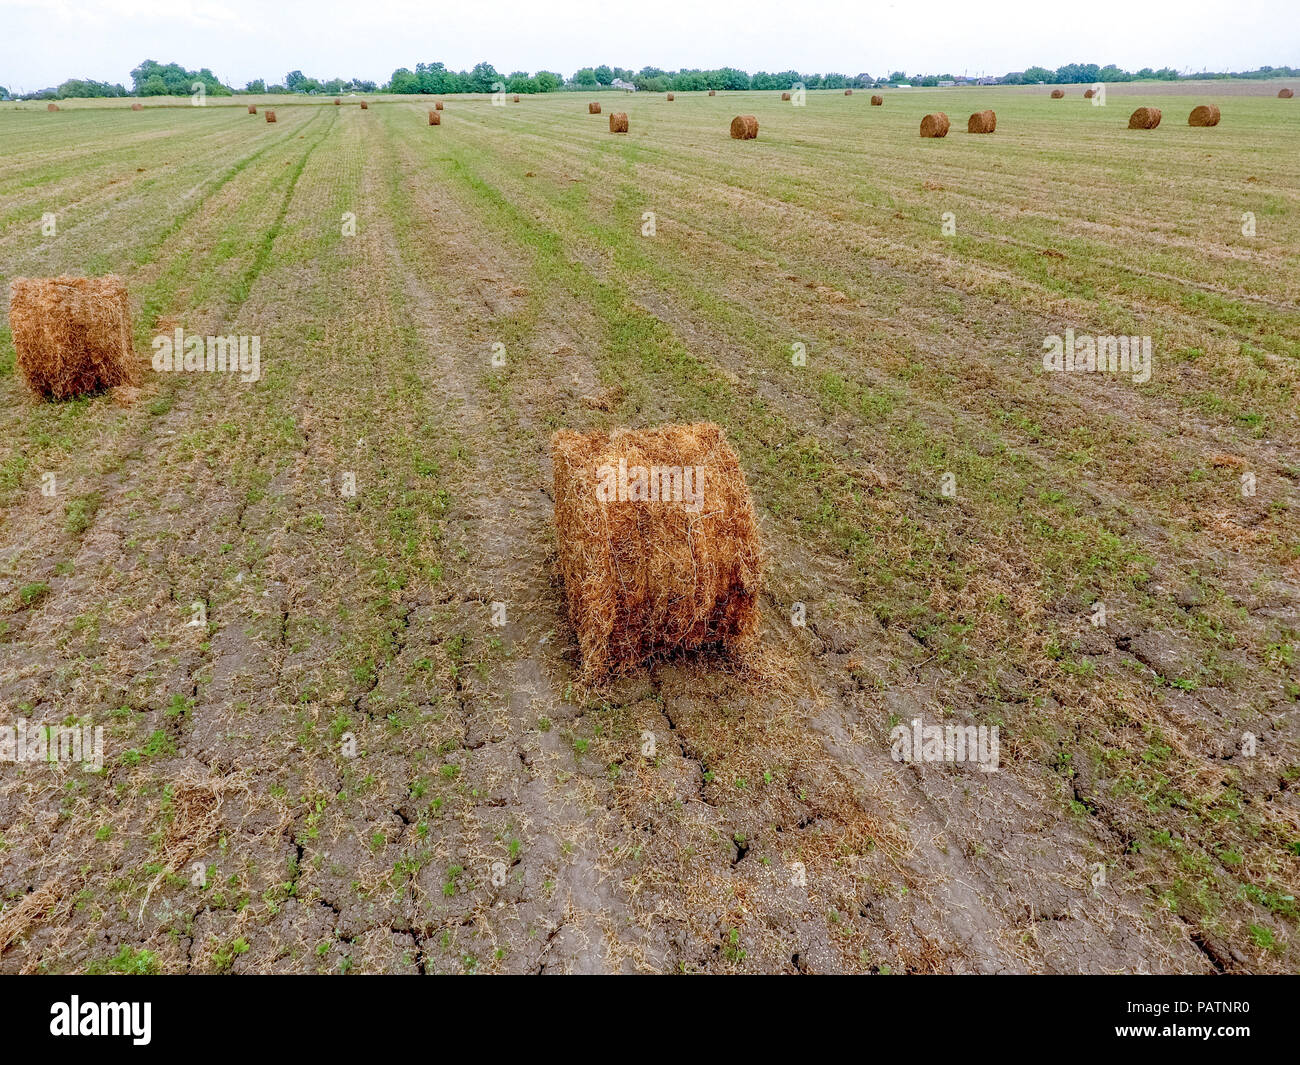 Feed Hay Bales Of Hay In The Field Harvesting Hay For Livestock Feed